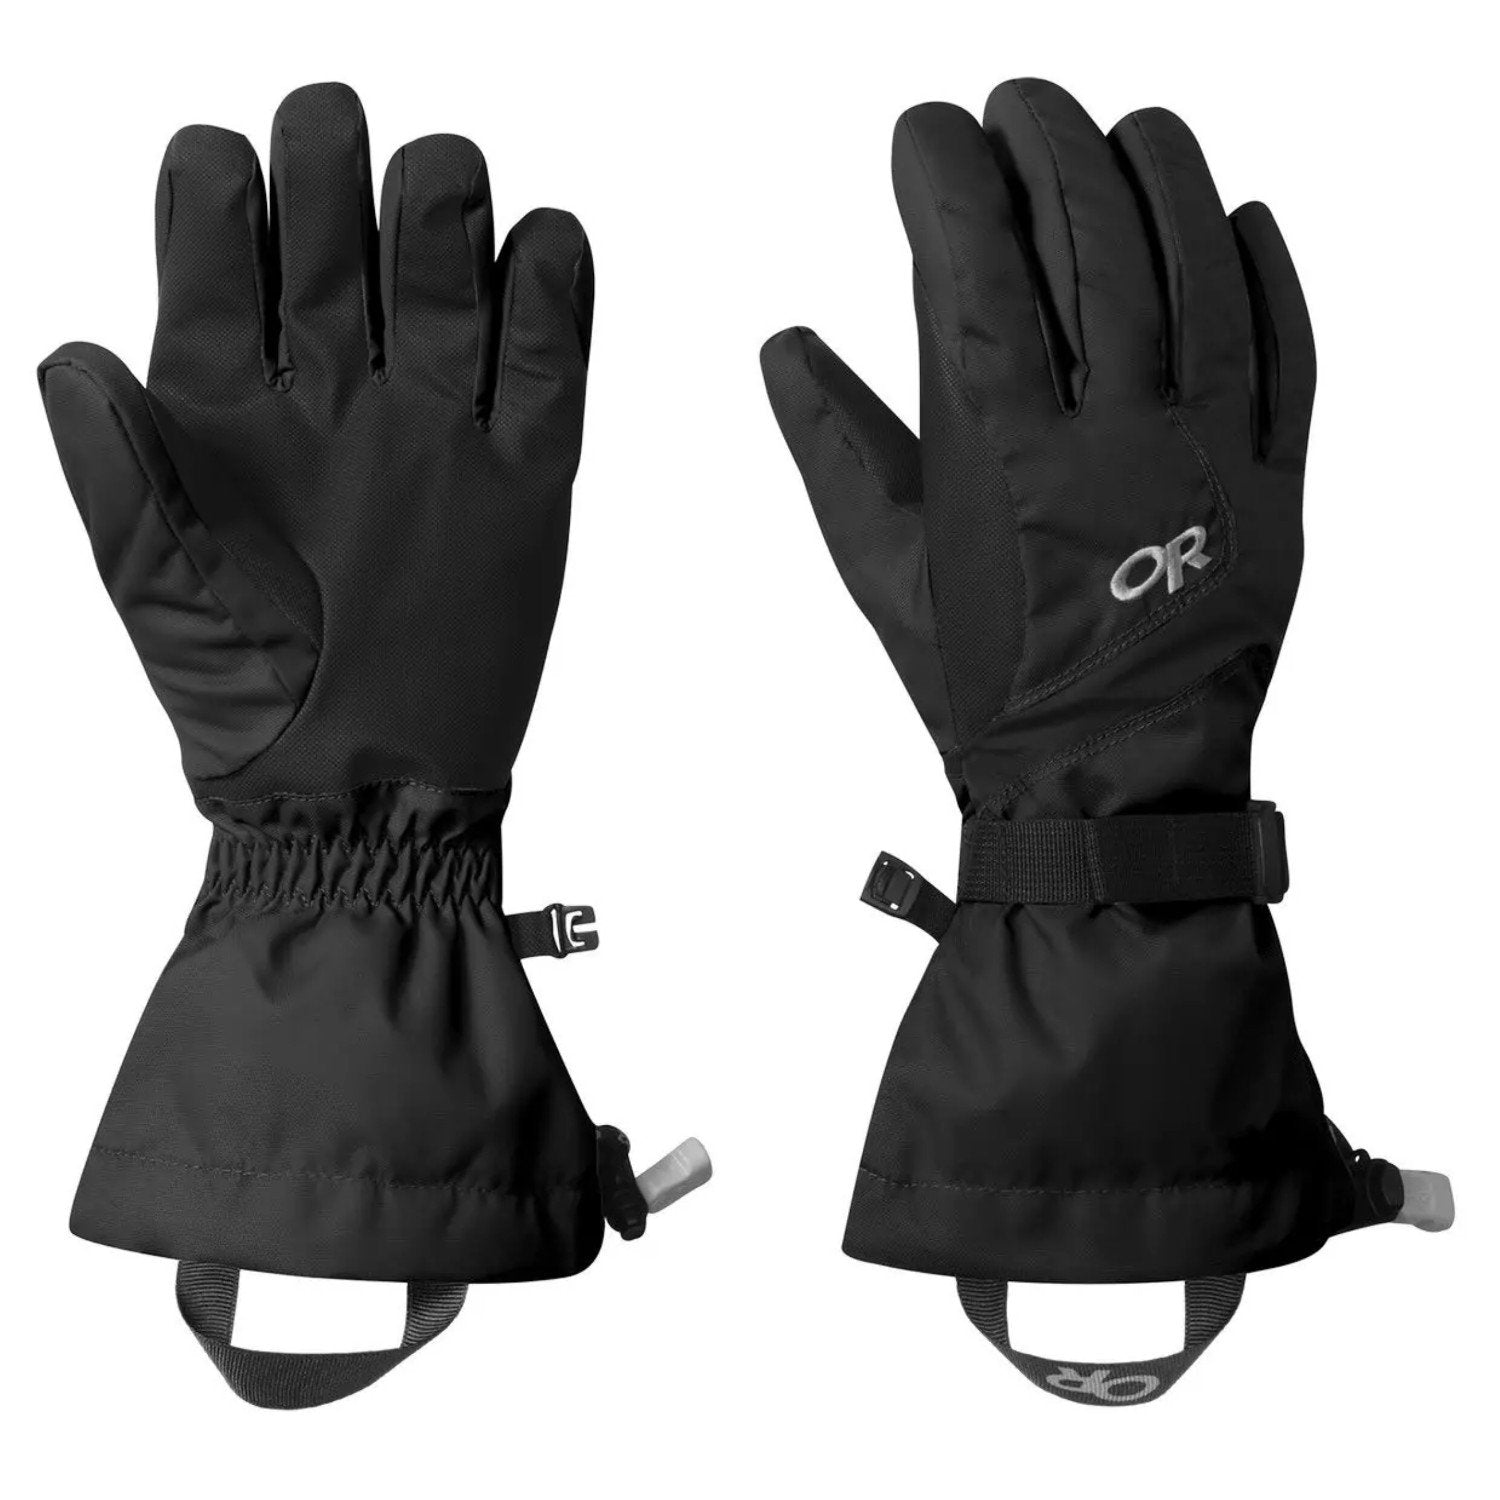 Pair of Outdoor Research Adrenaline Gloves Womens, one showing front view one showing reverse view